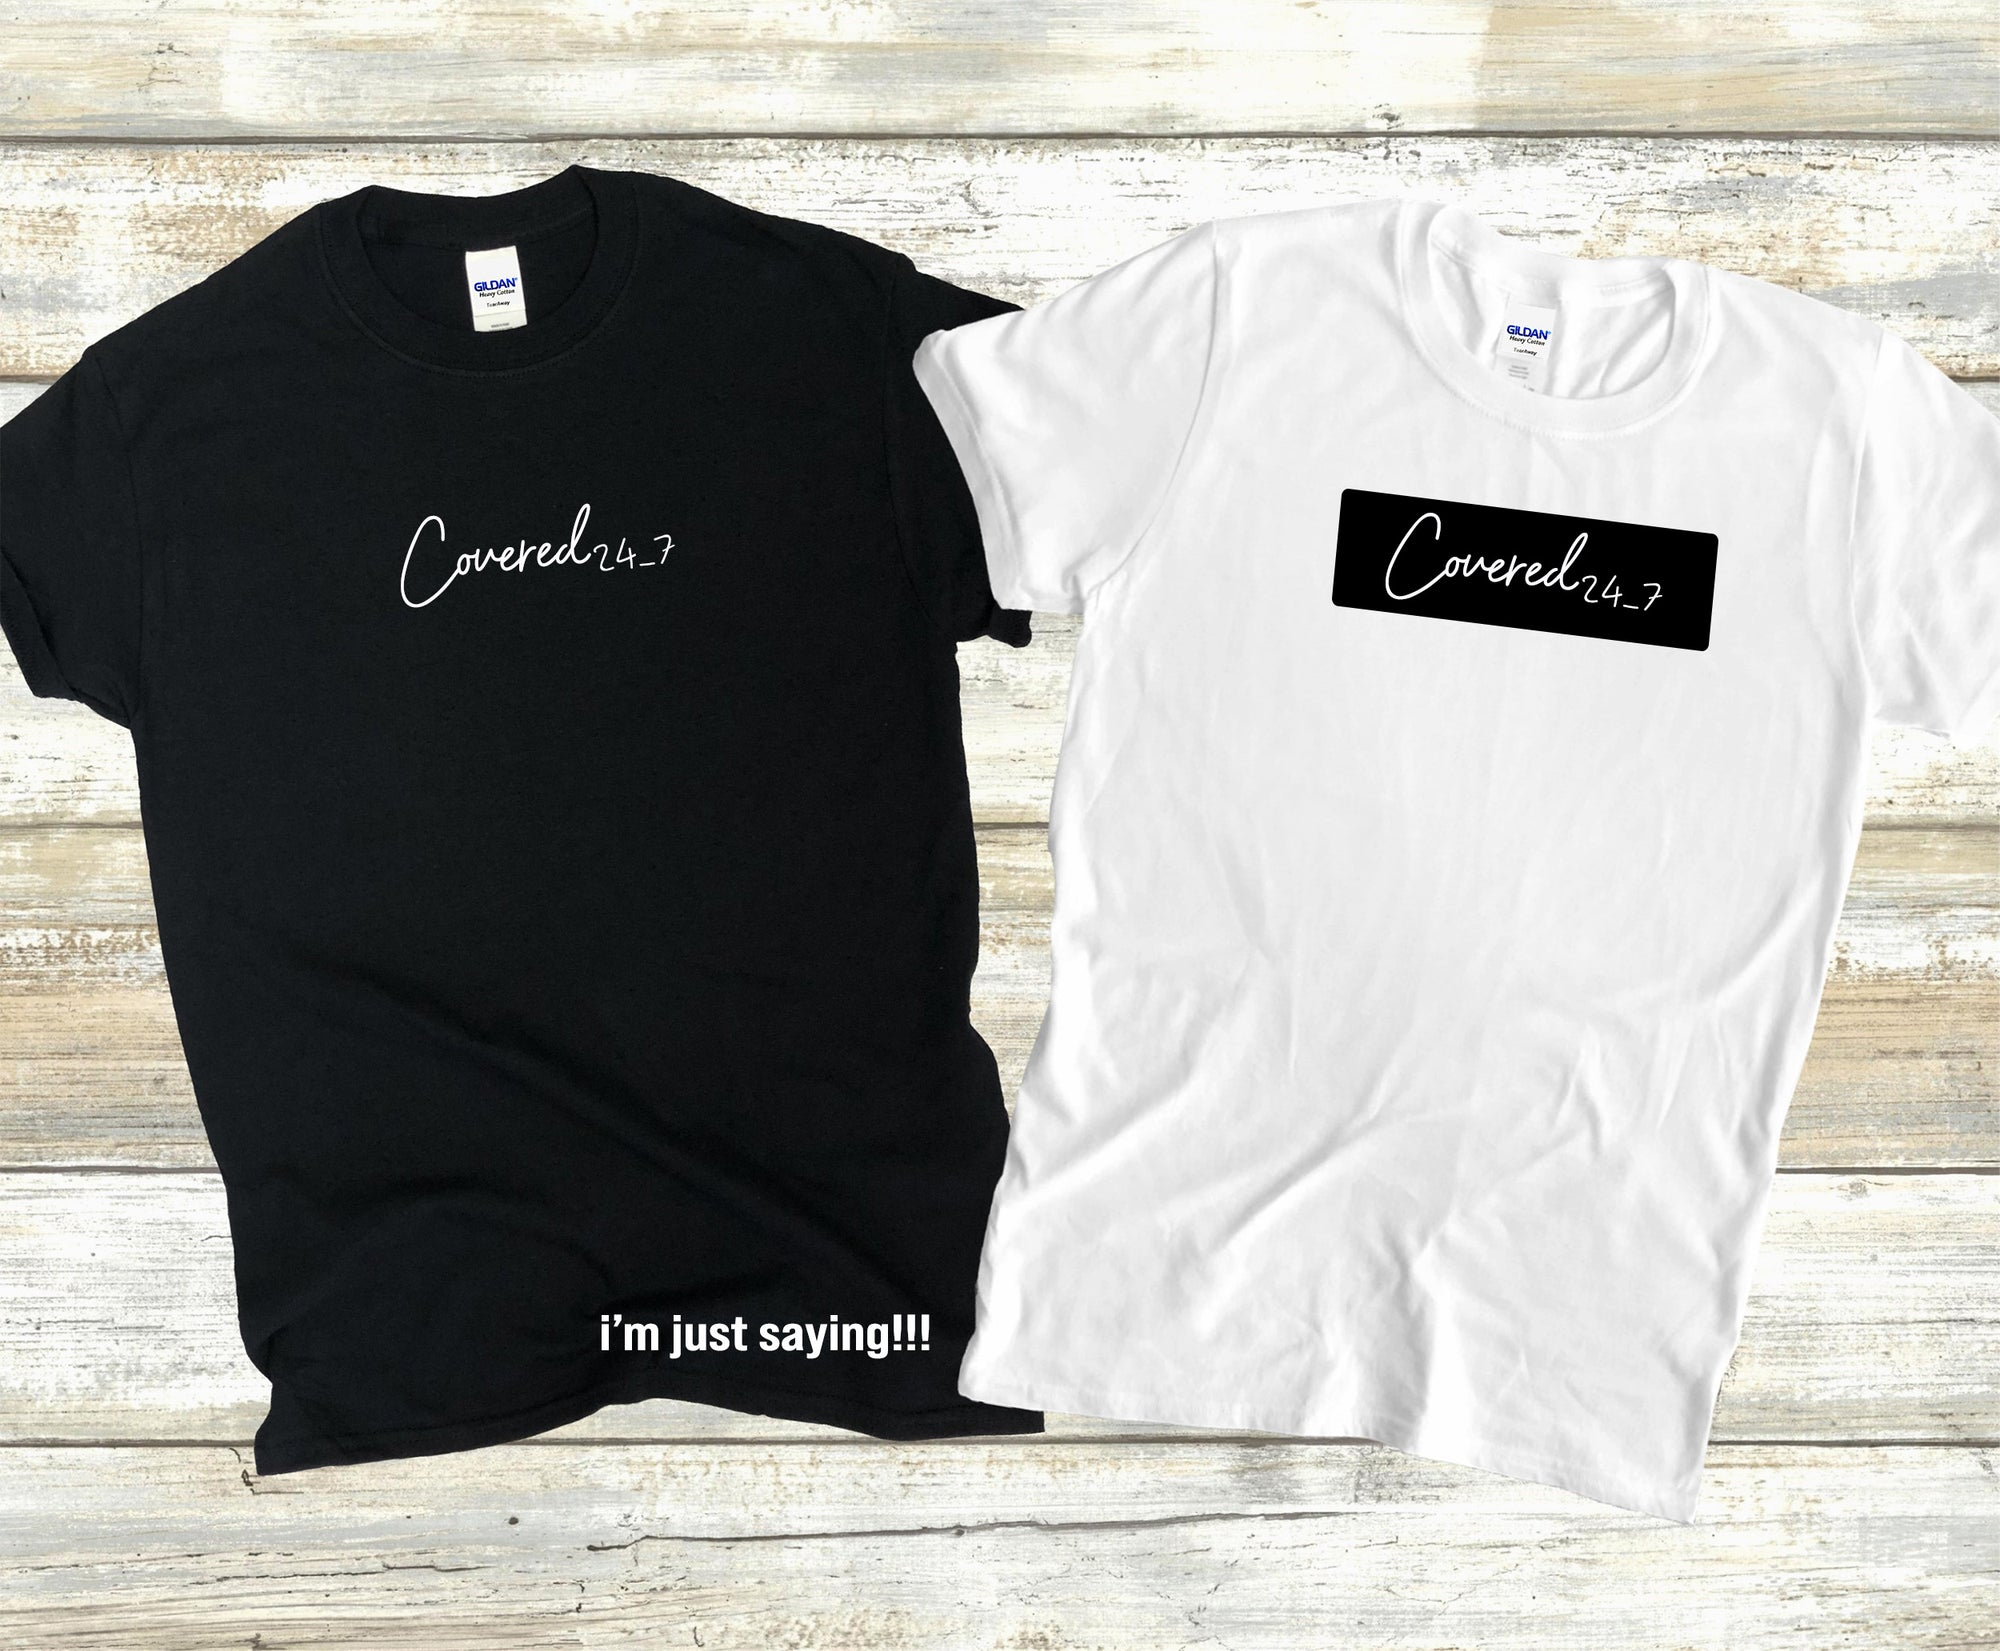 Covered  24/7 Tee